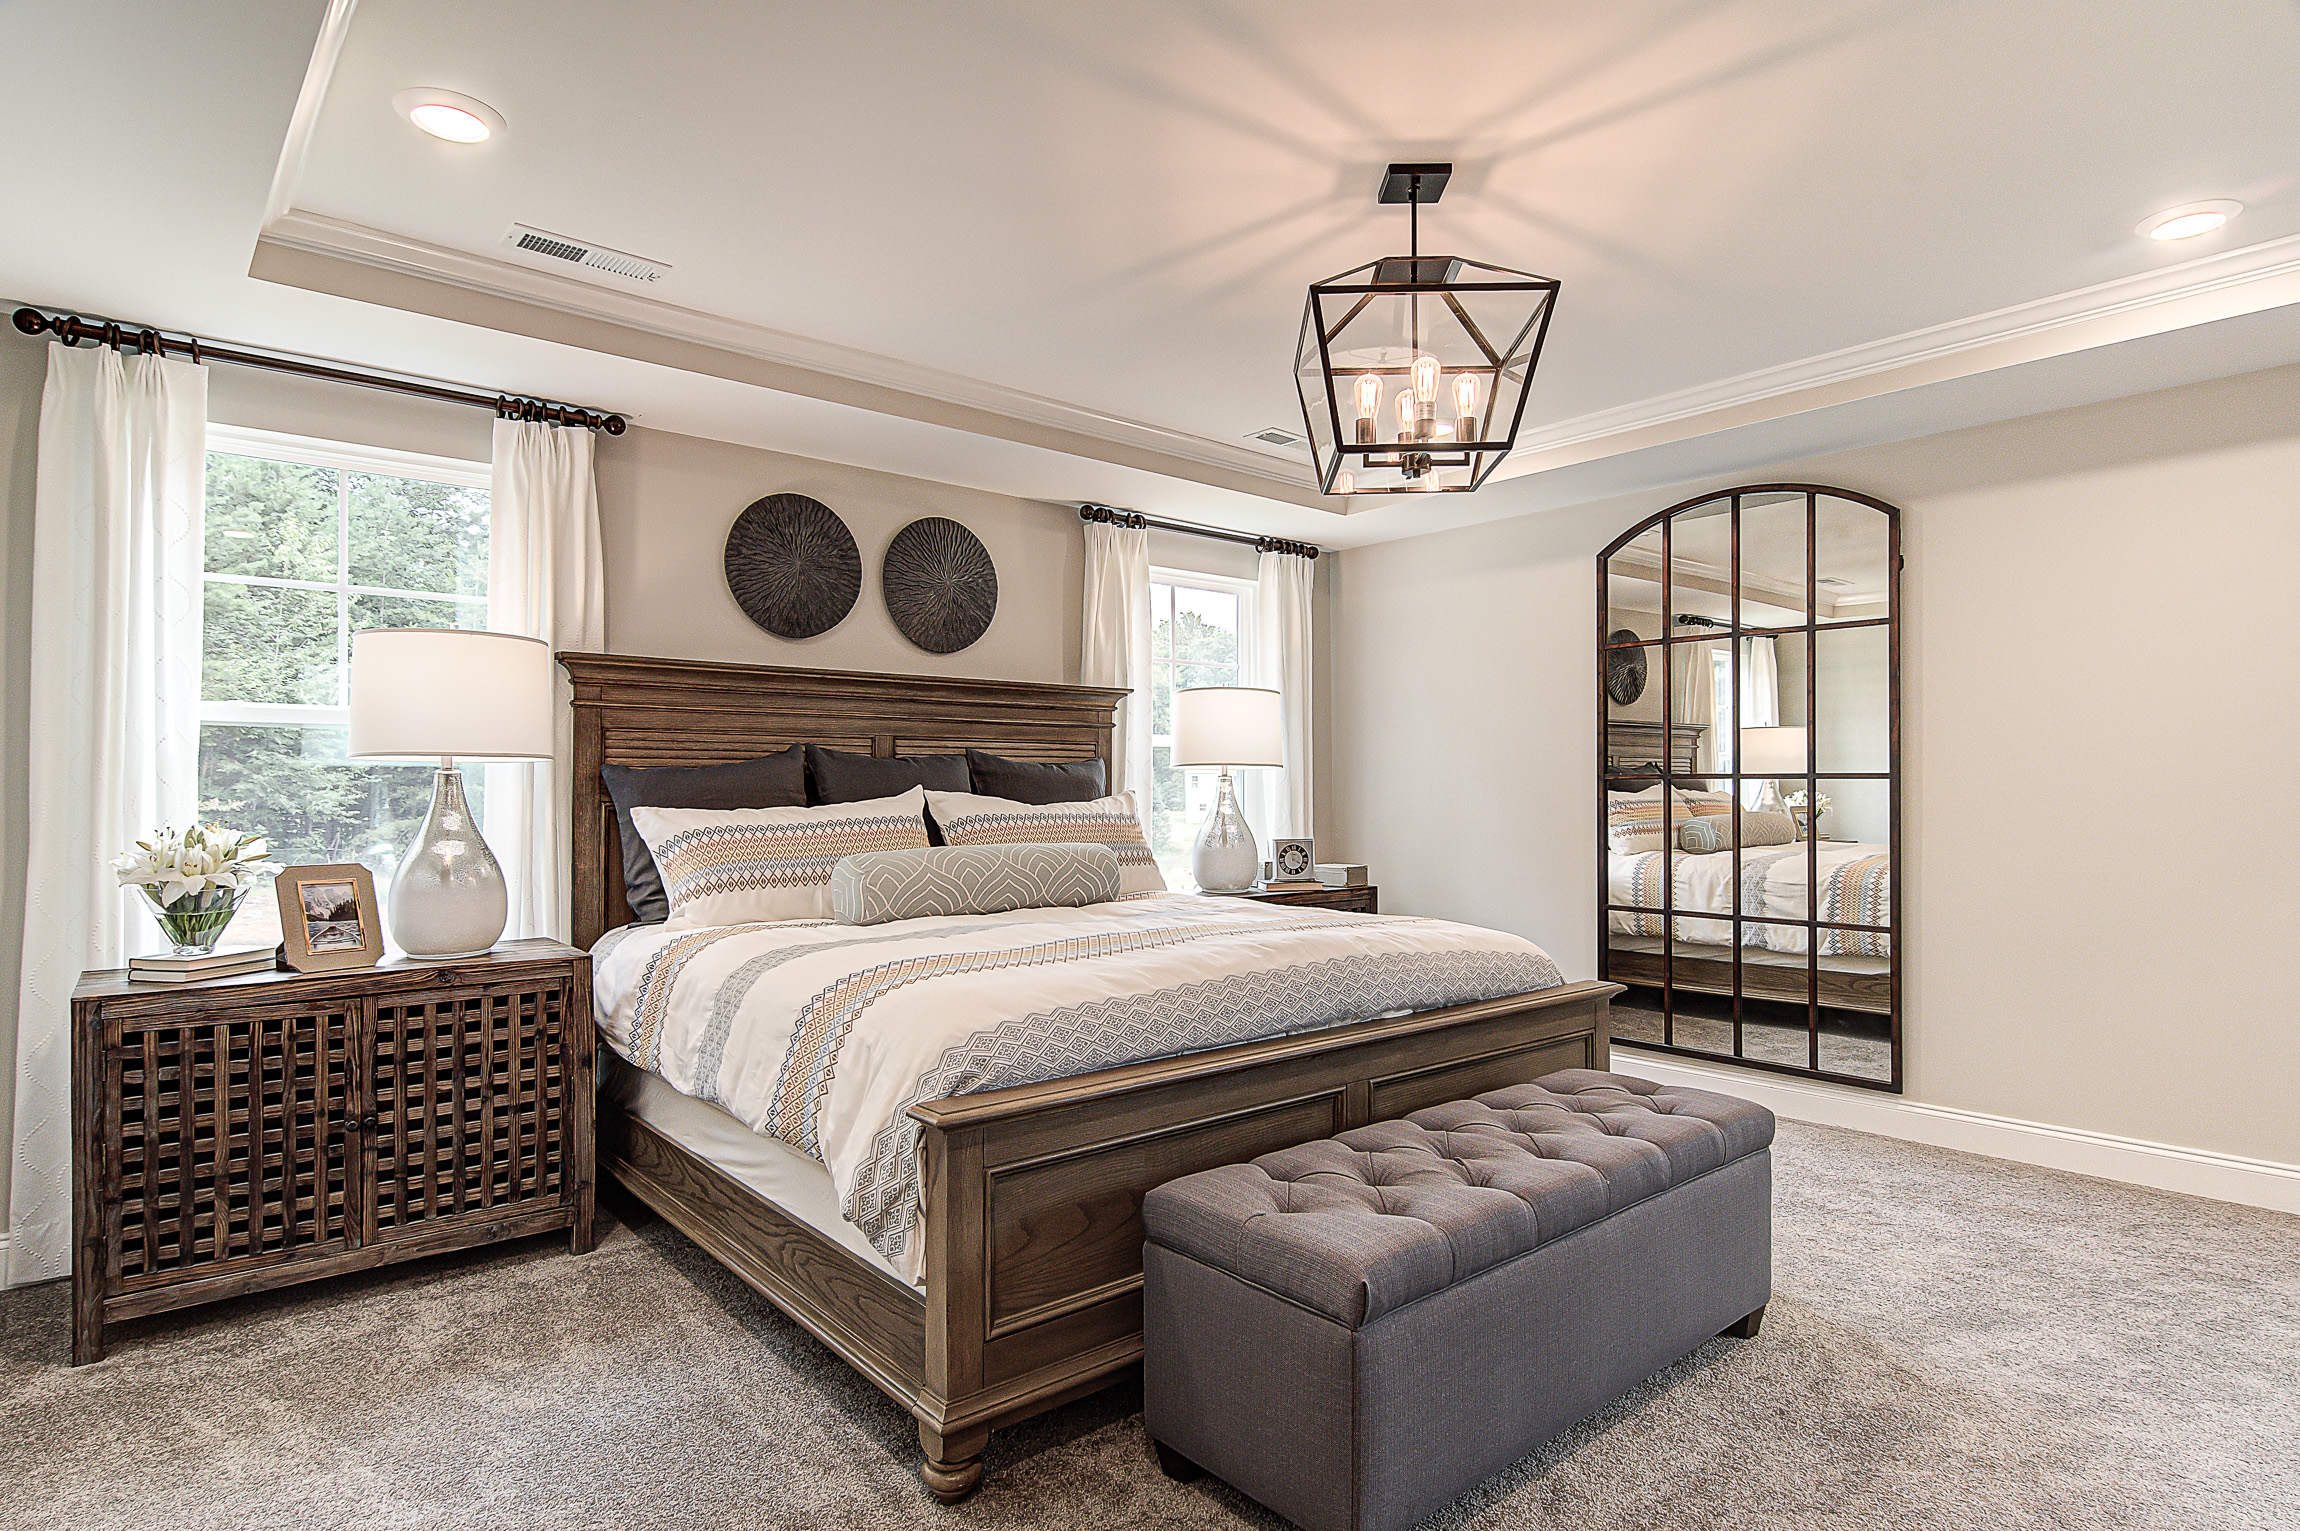 Drexel Owner's Bedroom